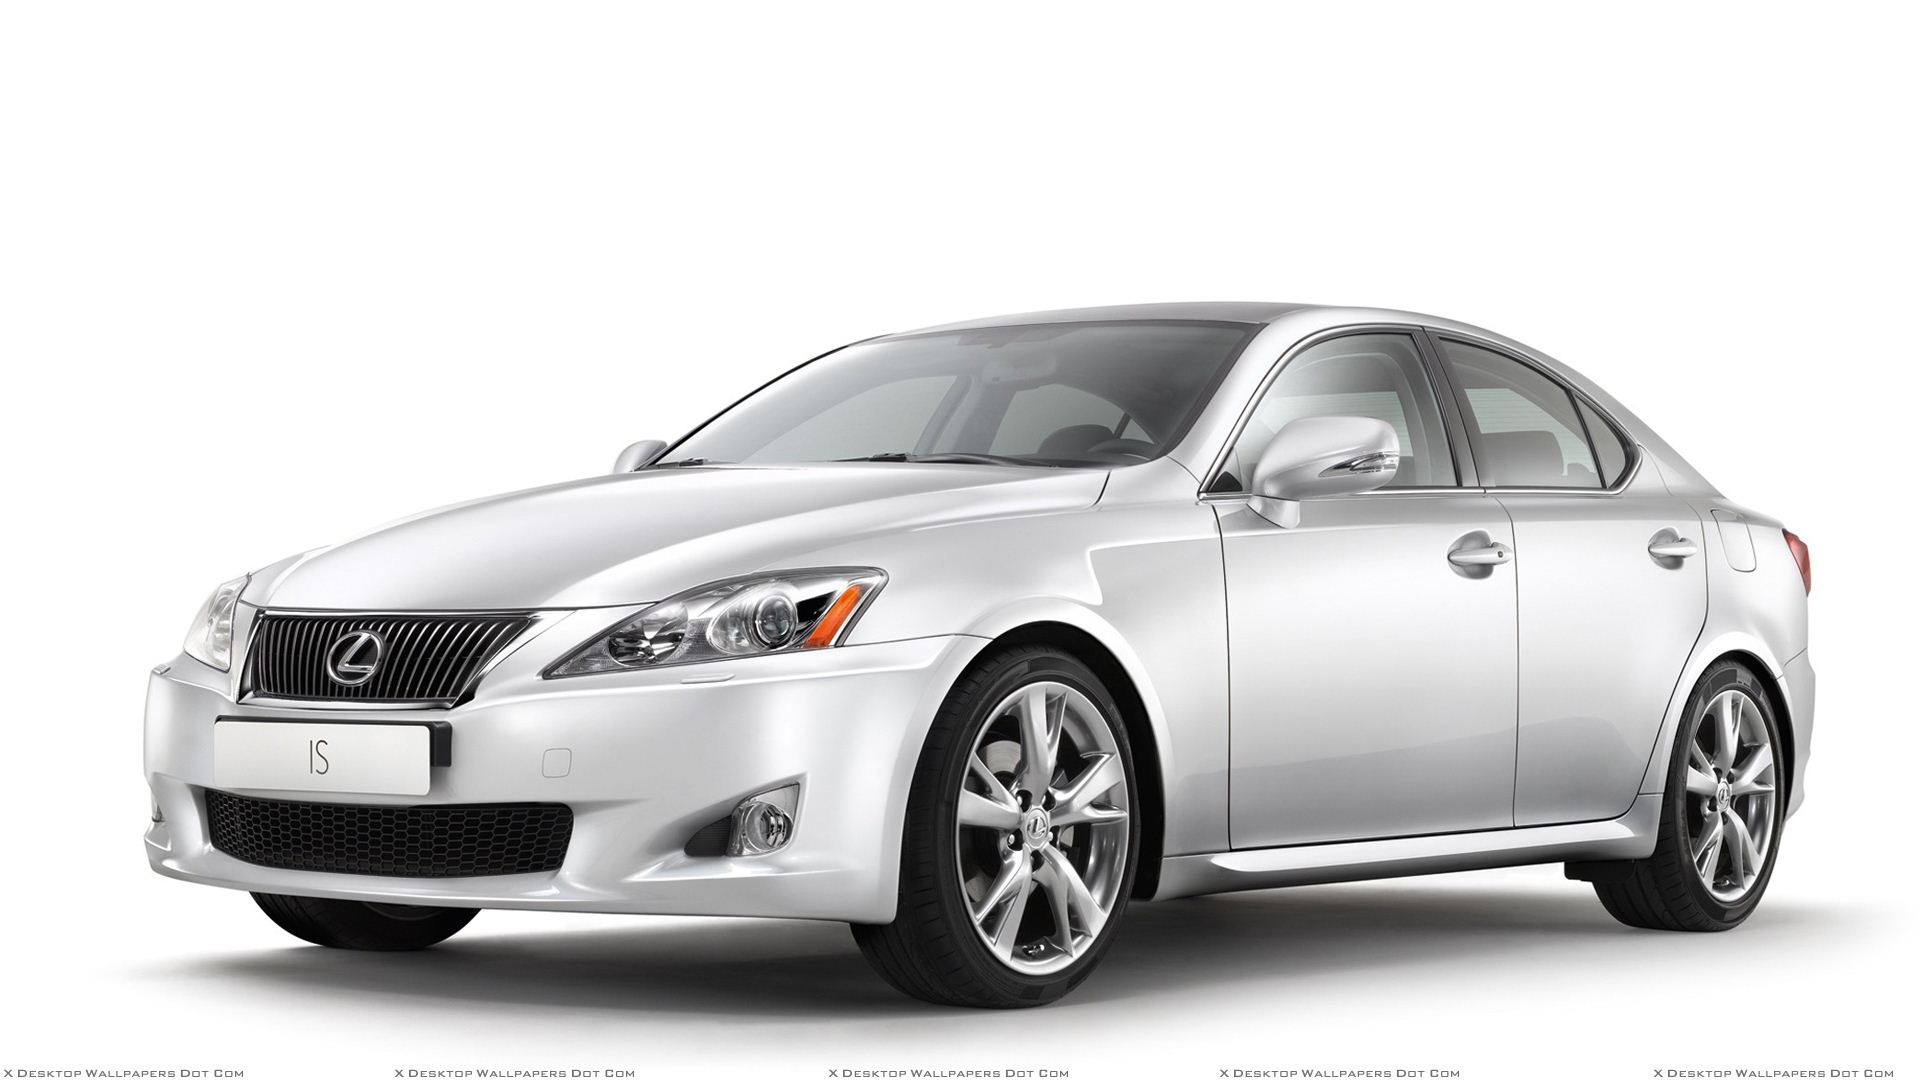 Lexus Wallpapers Photos Images In Hd